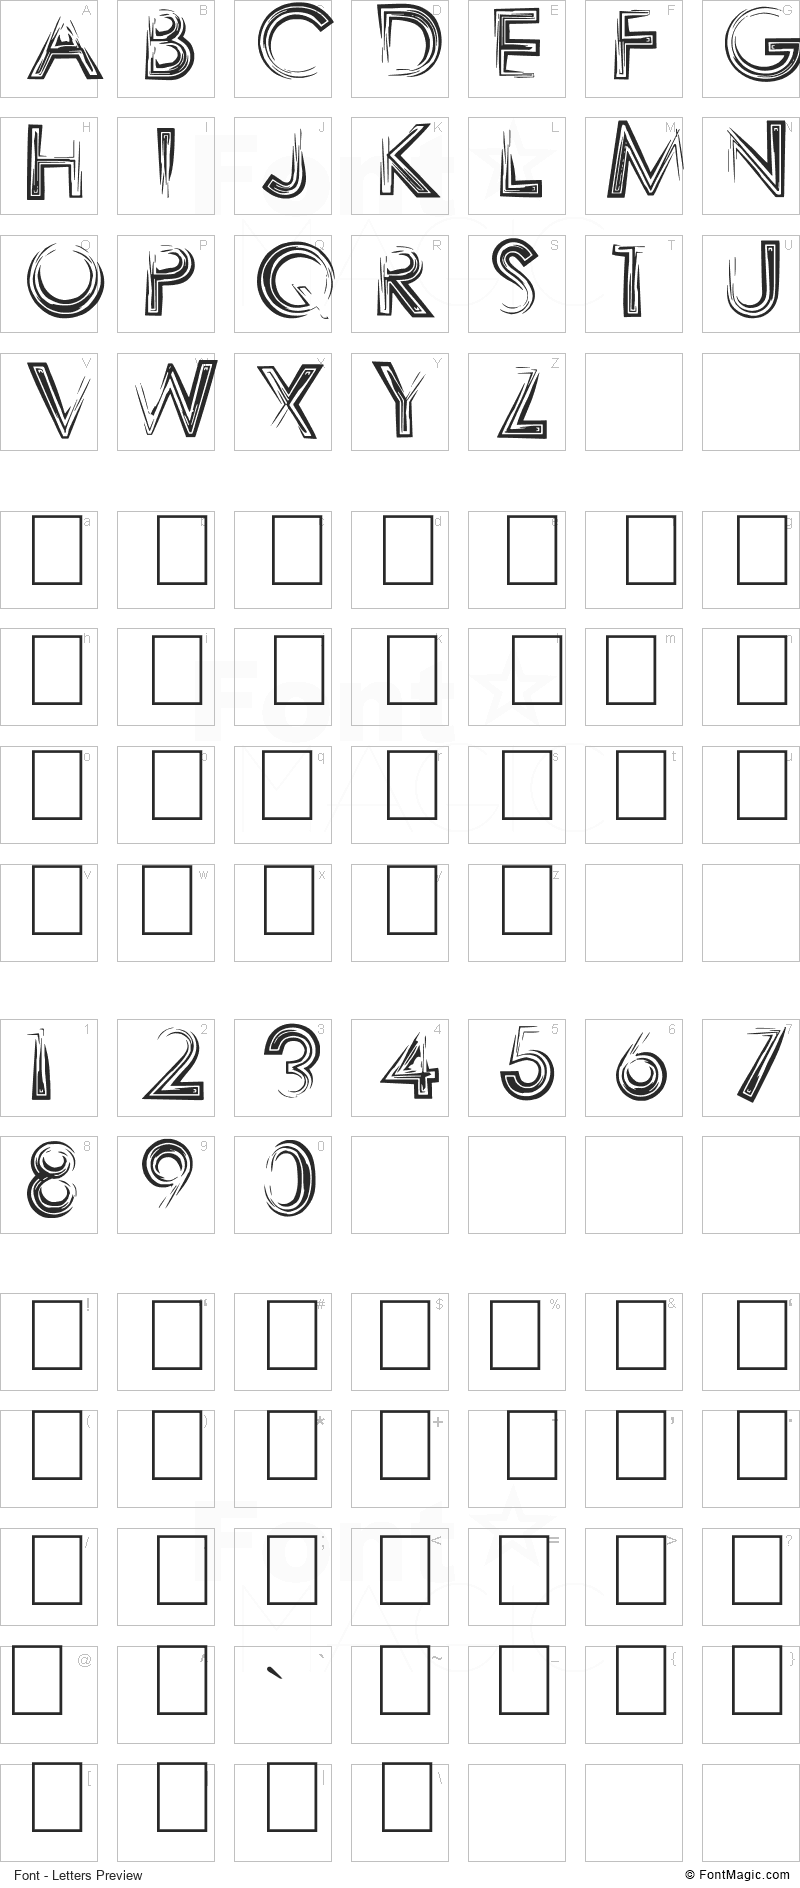 Sharpy Font - All Latters Preview Chart